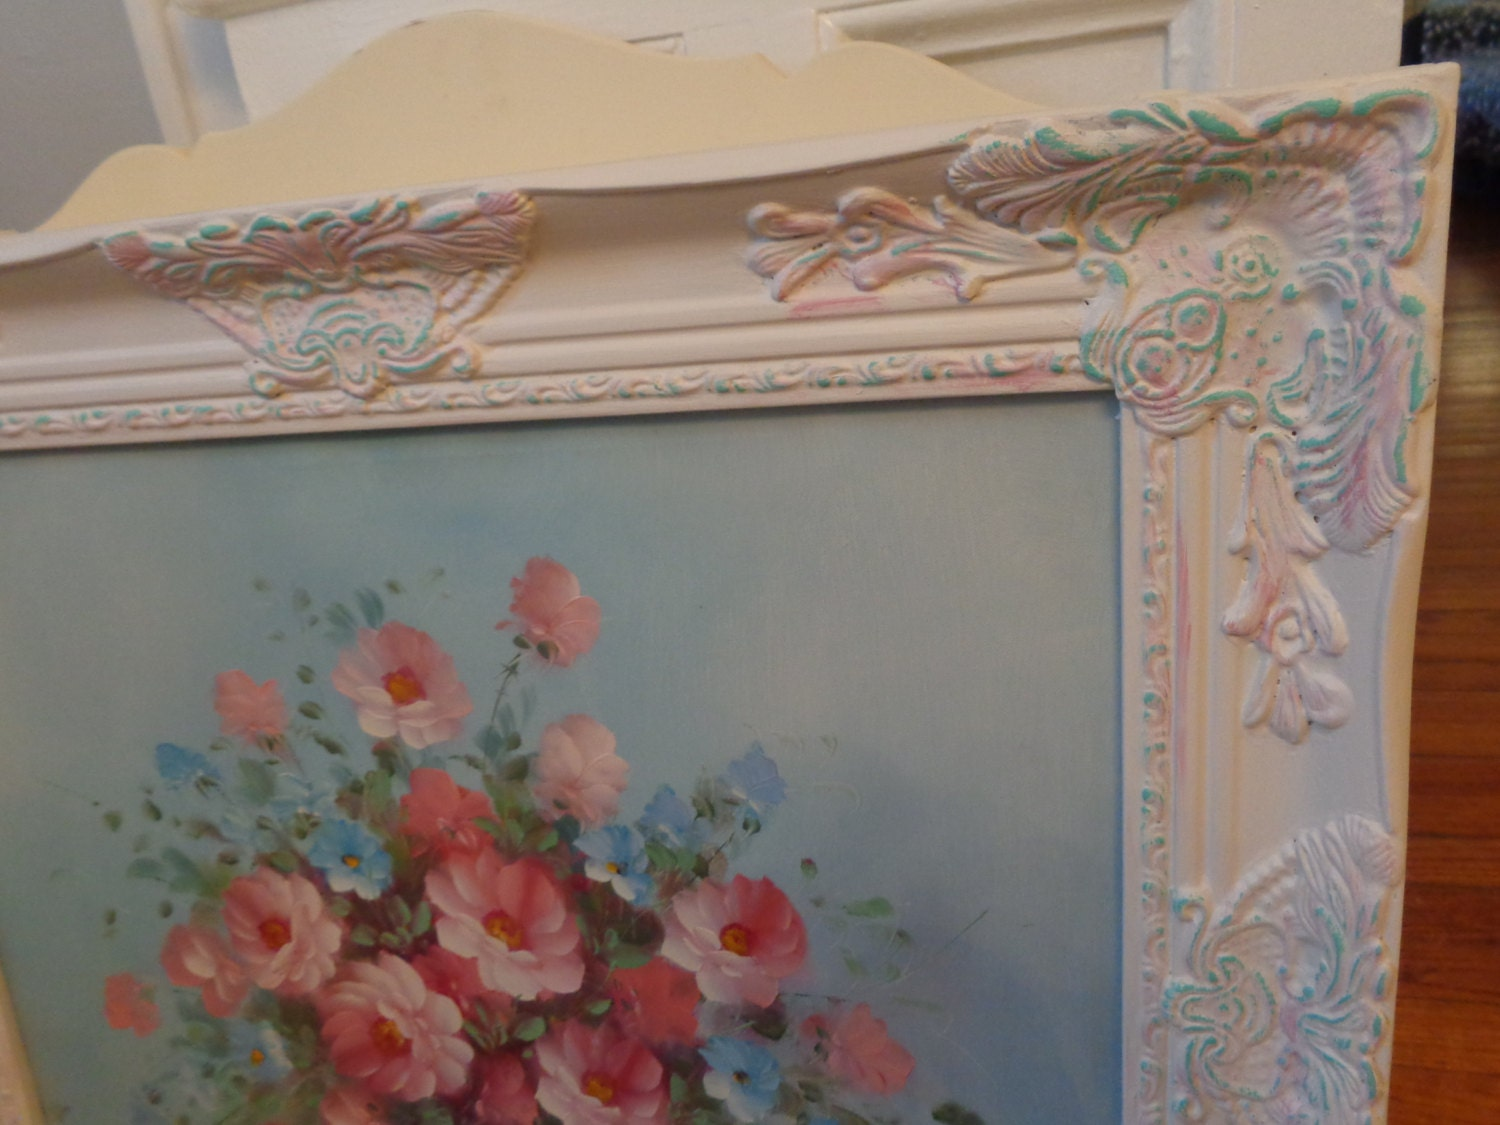 Antique white stunning floral baroque canvas art framed